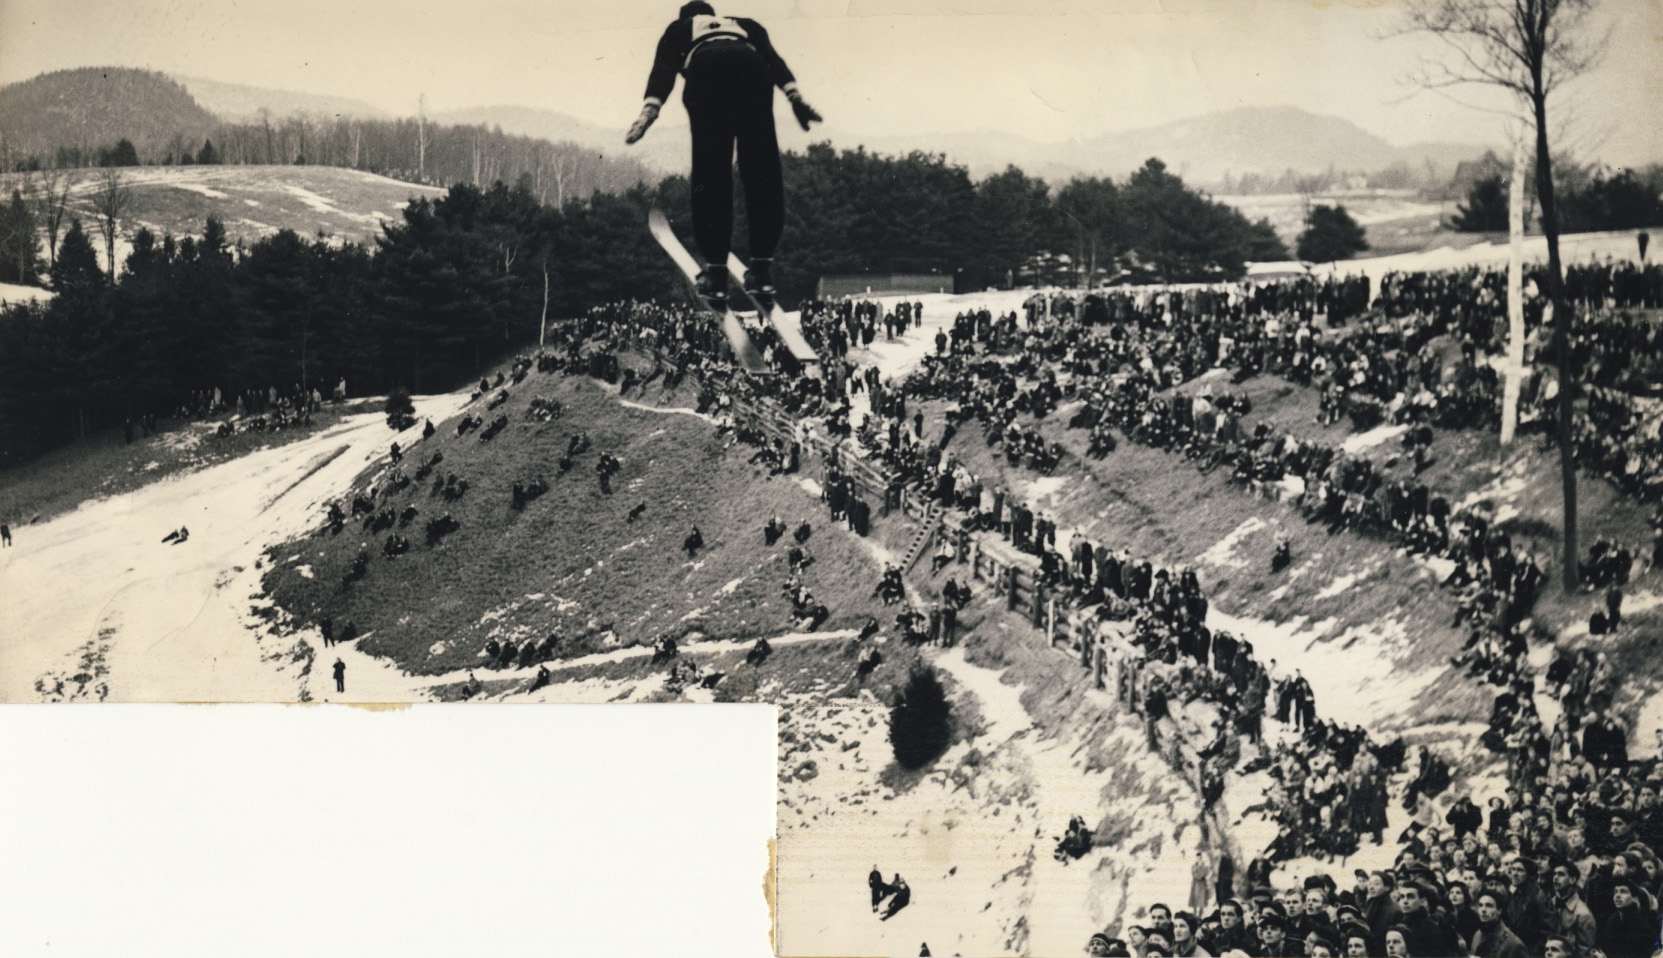 Warren Chivers at the 1938 Winter Carnival